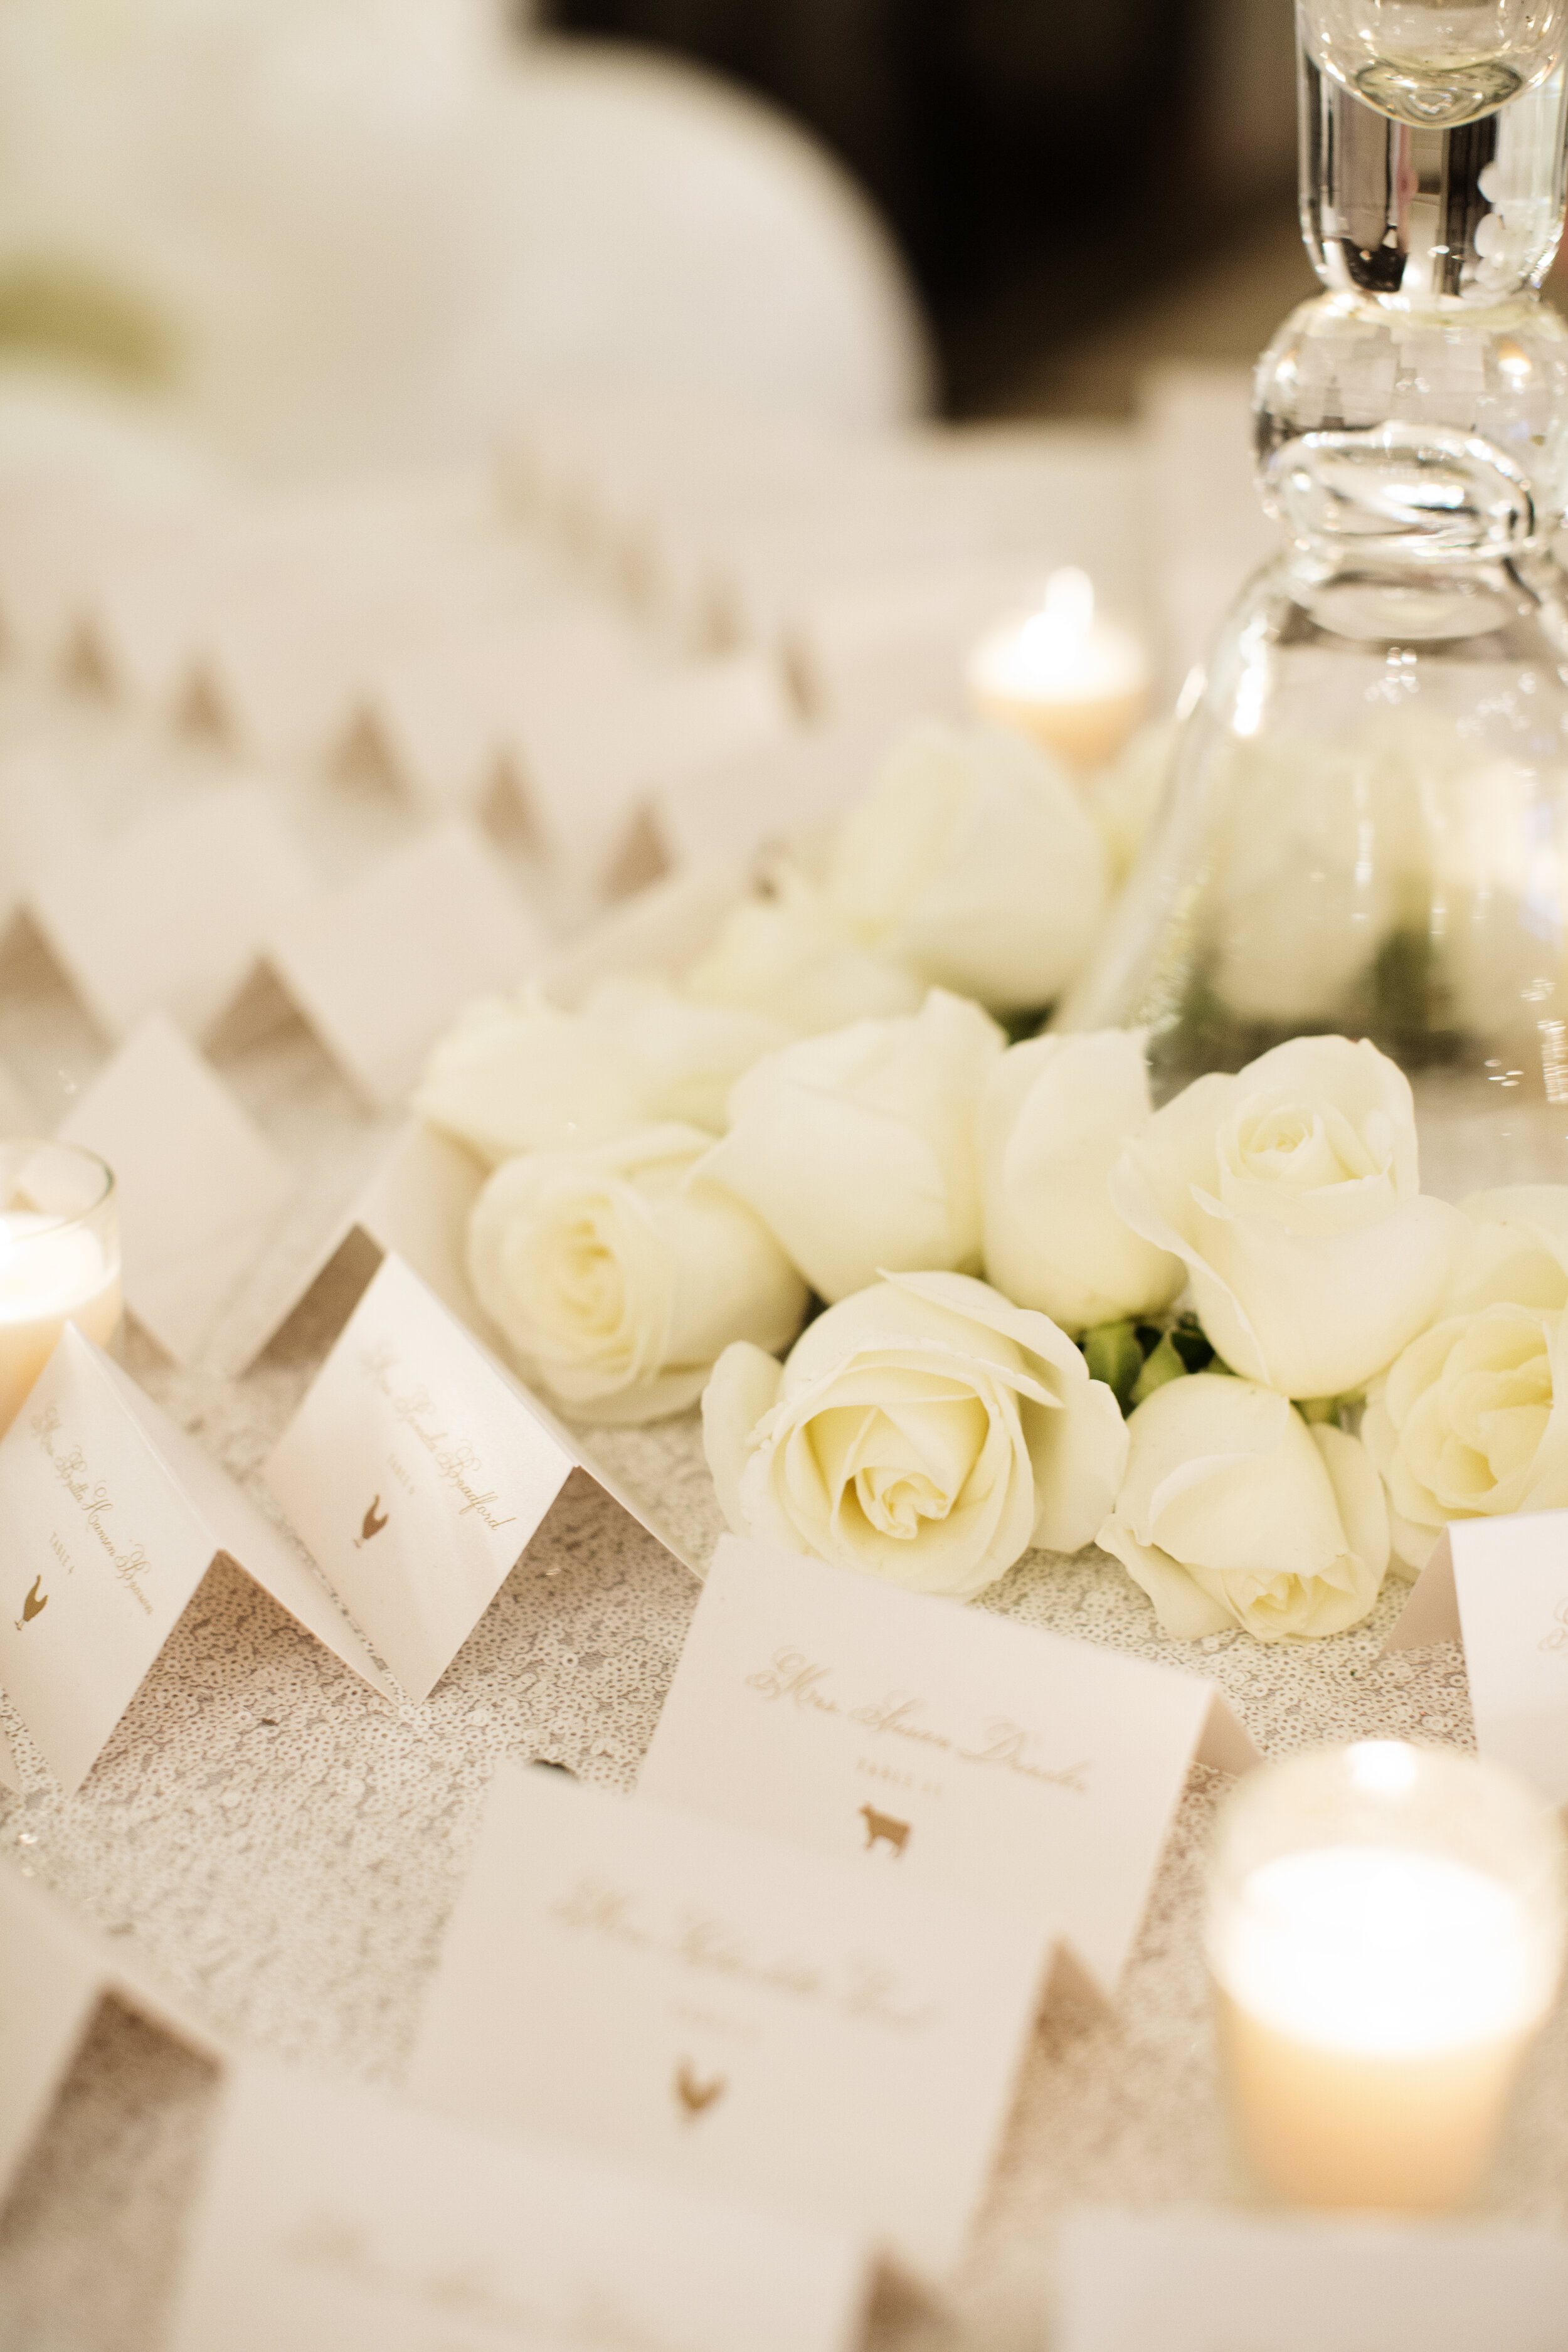 White and Gold Folded Escort Cards with Meal Choice Icon